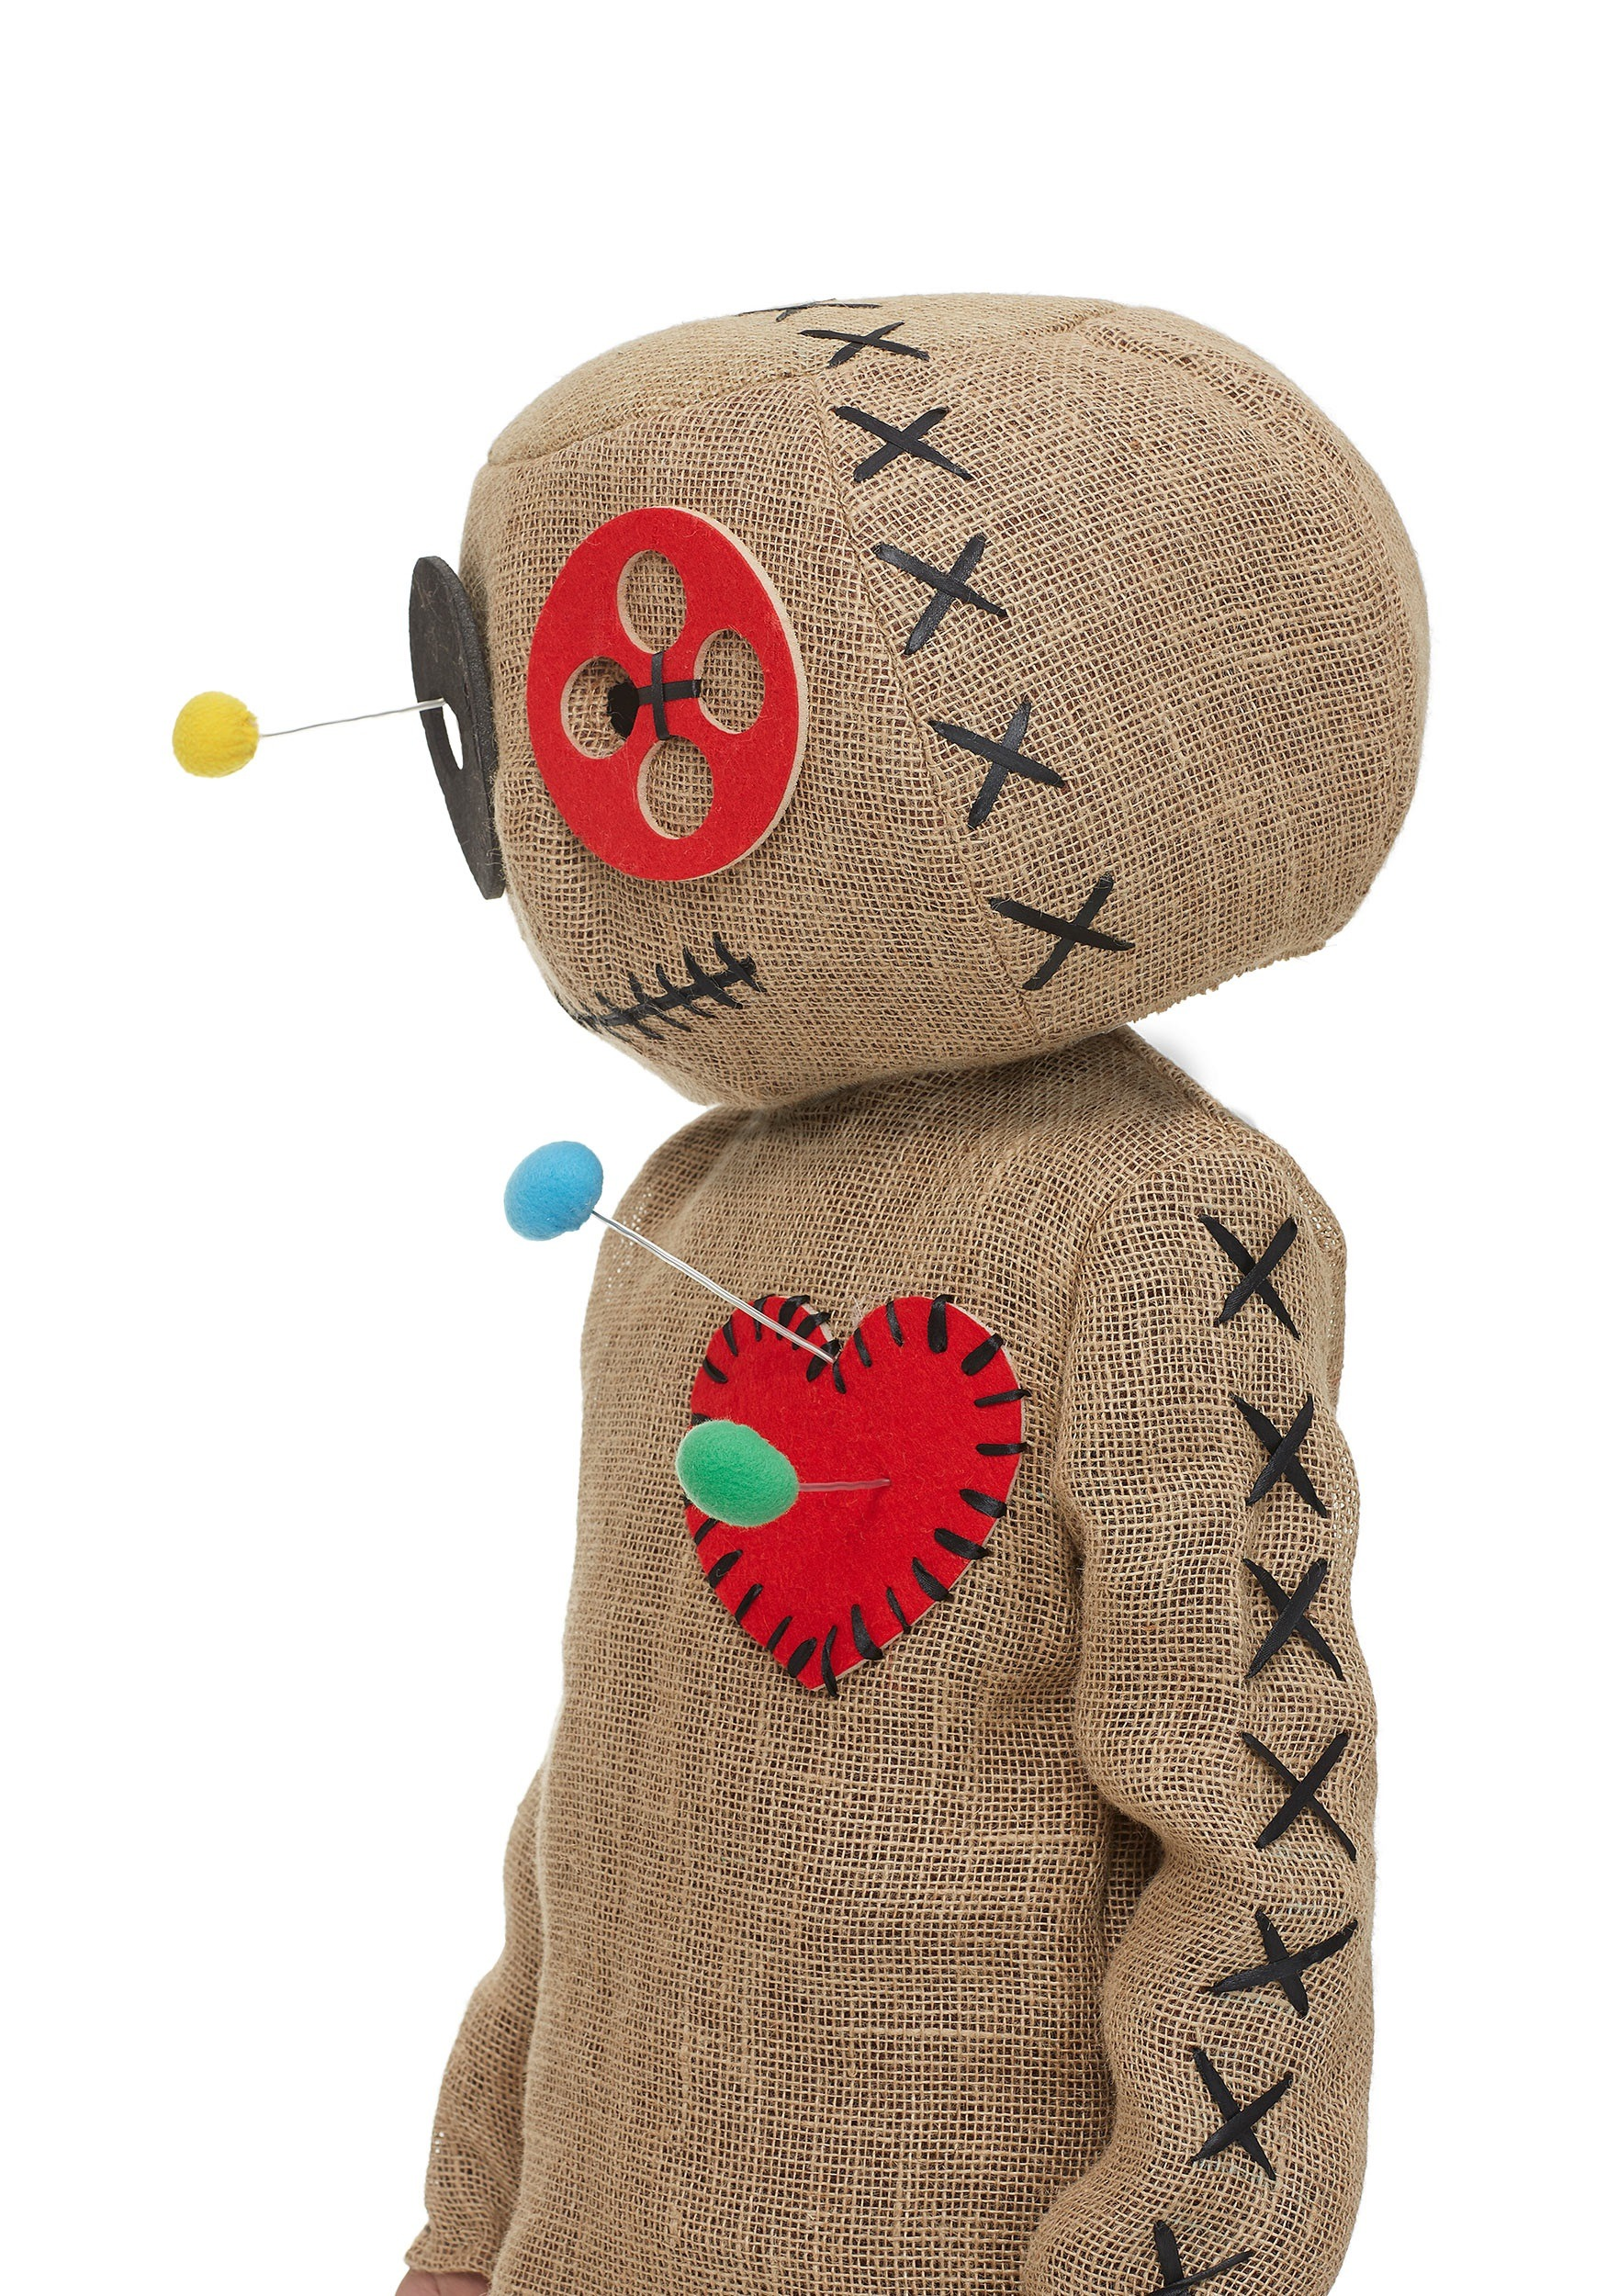 how to make voodoo doll halloween costume